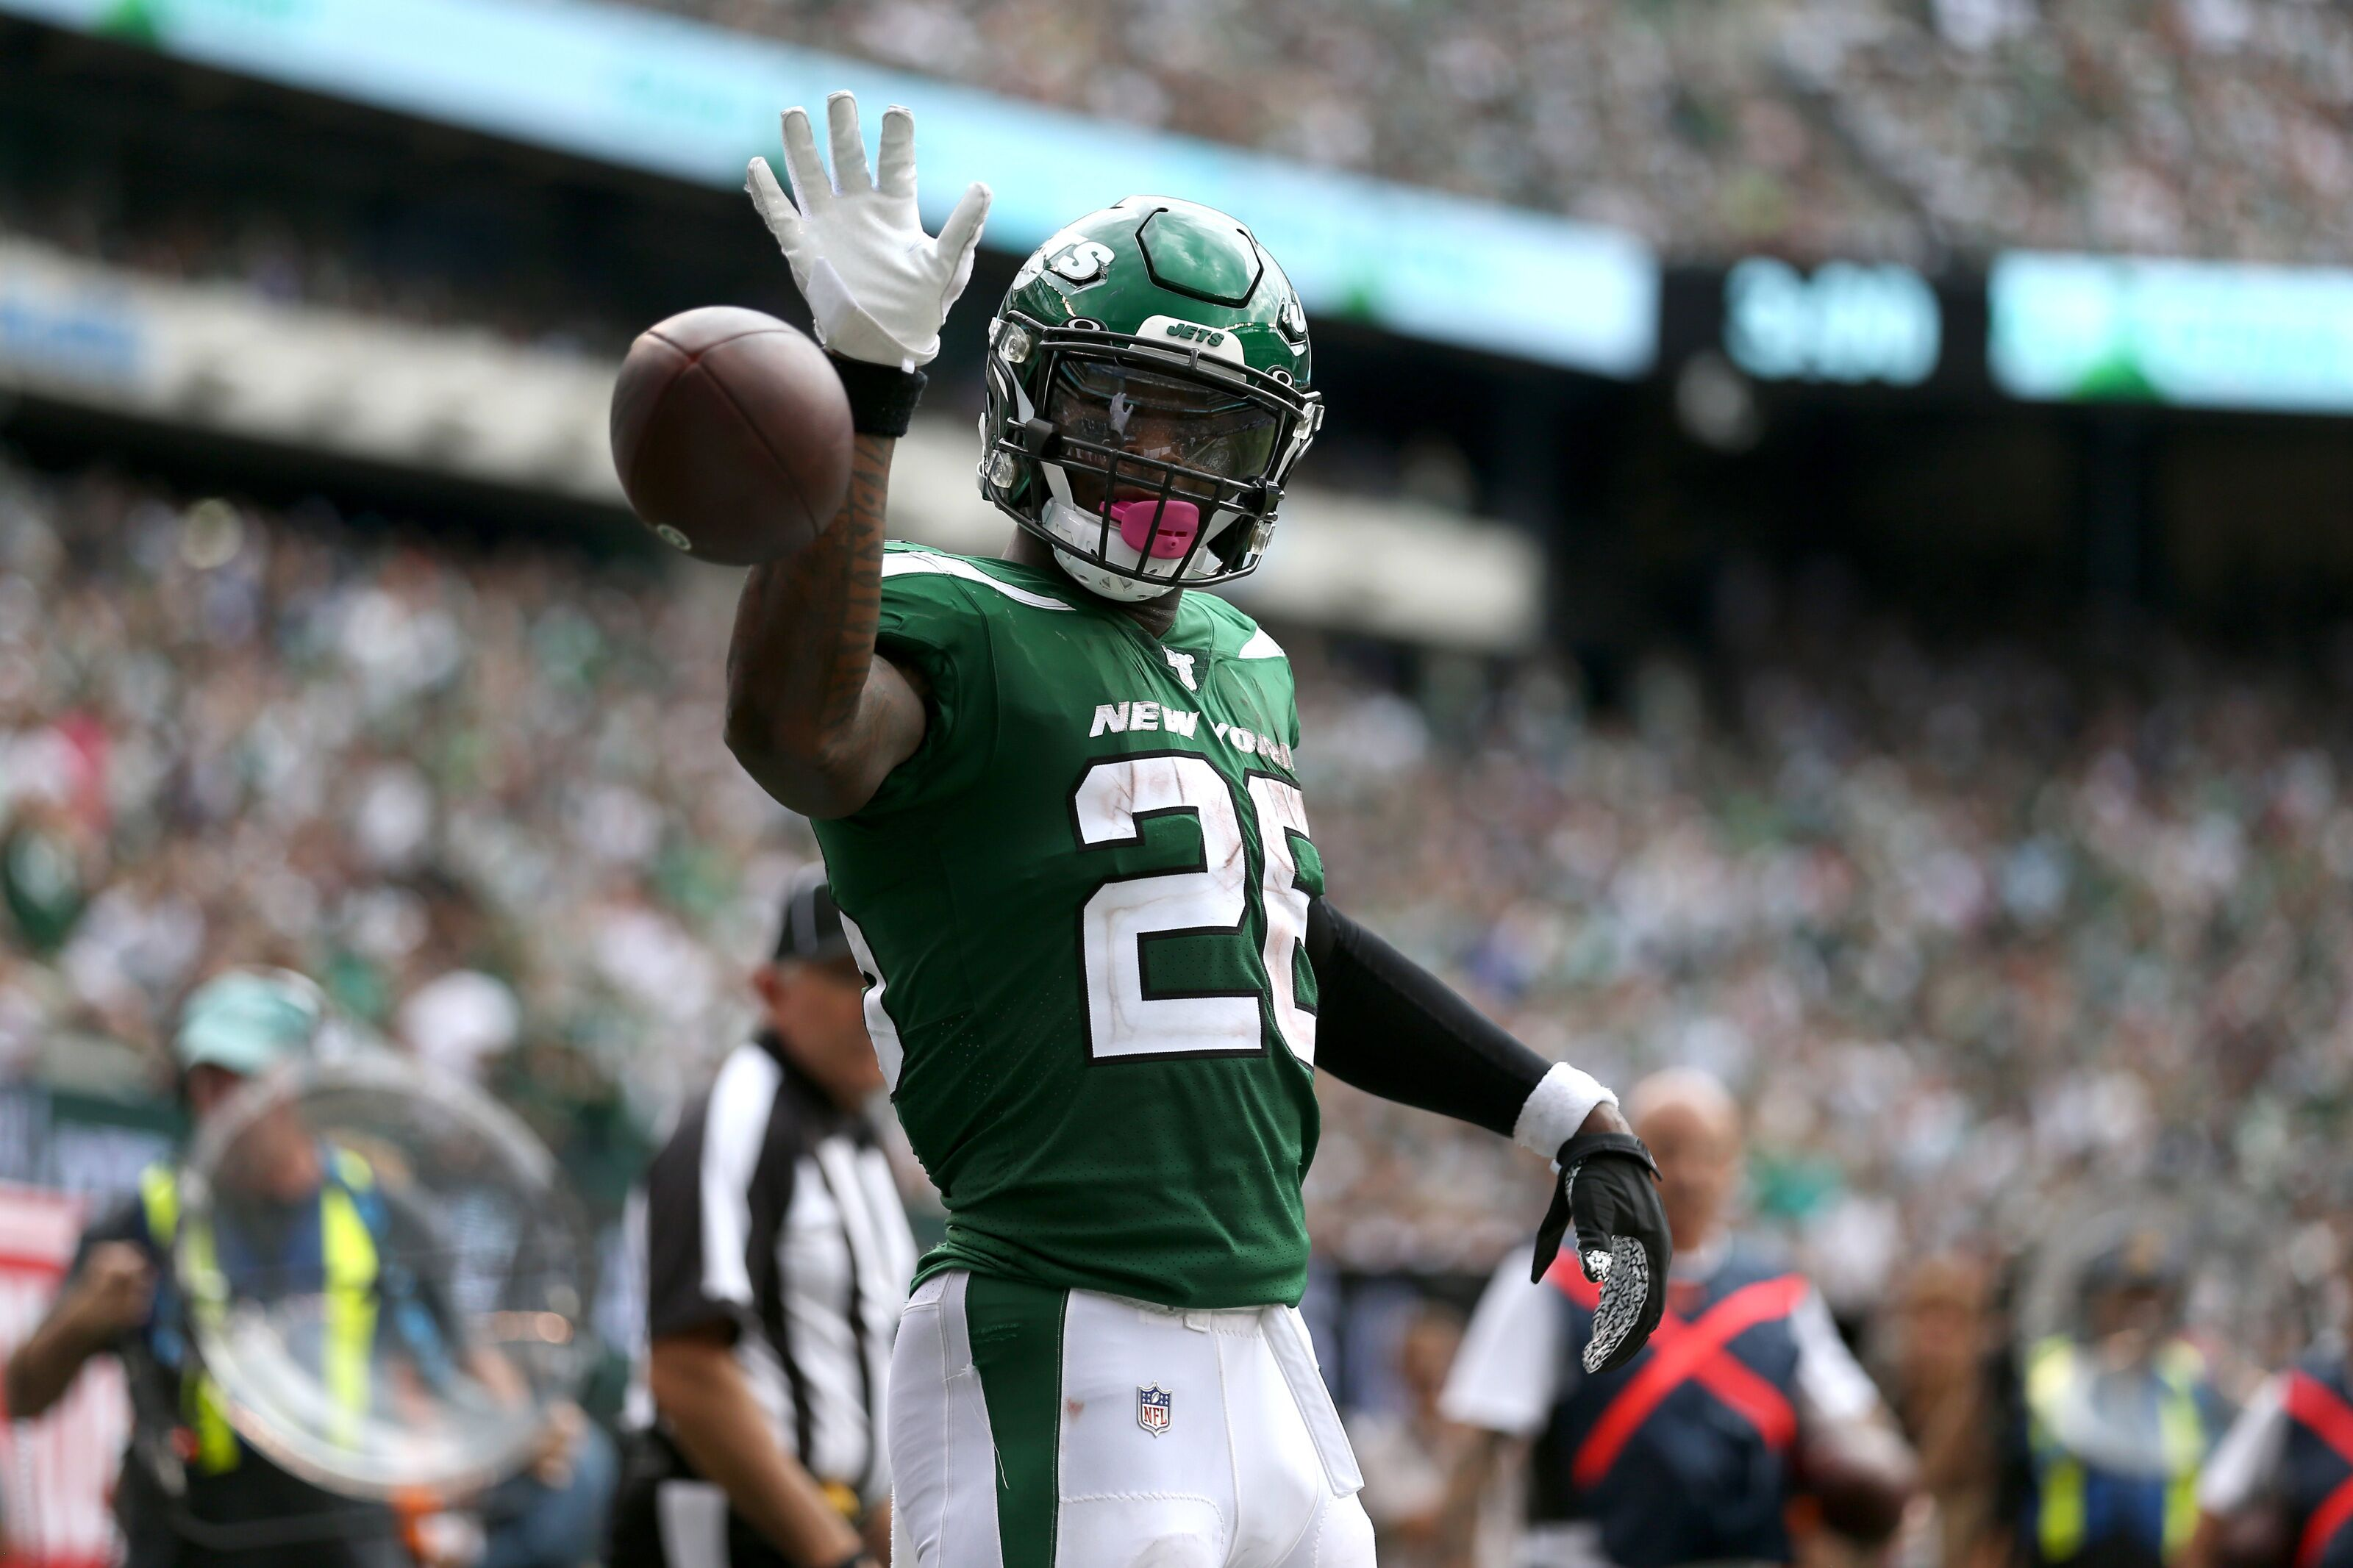 How Cleveland Browns defend Le'Veon Bell will be biggest key vs. Jets